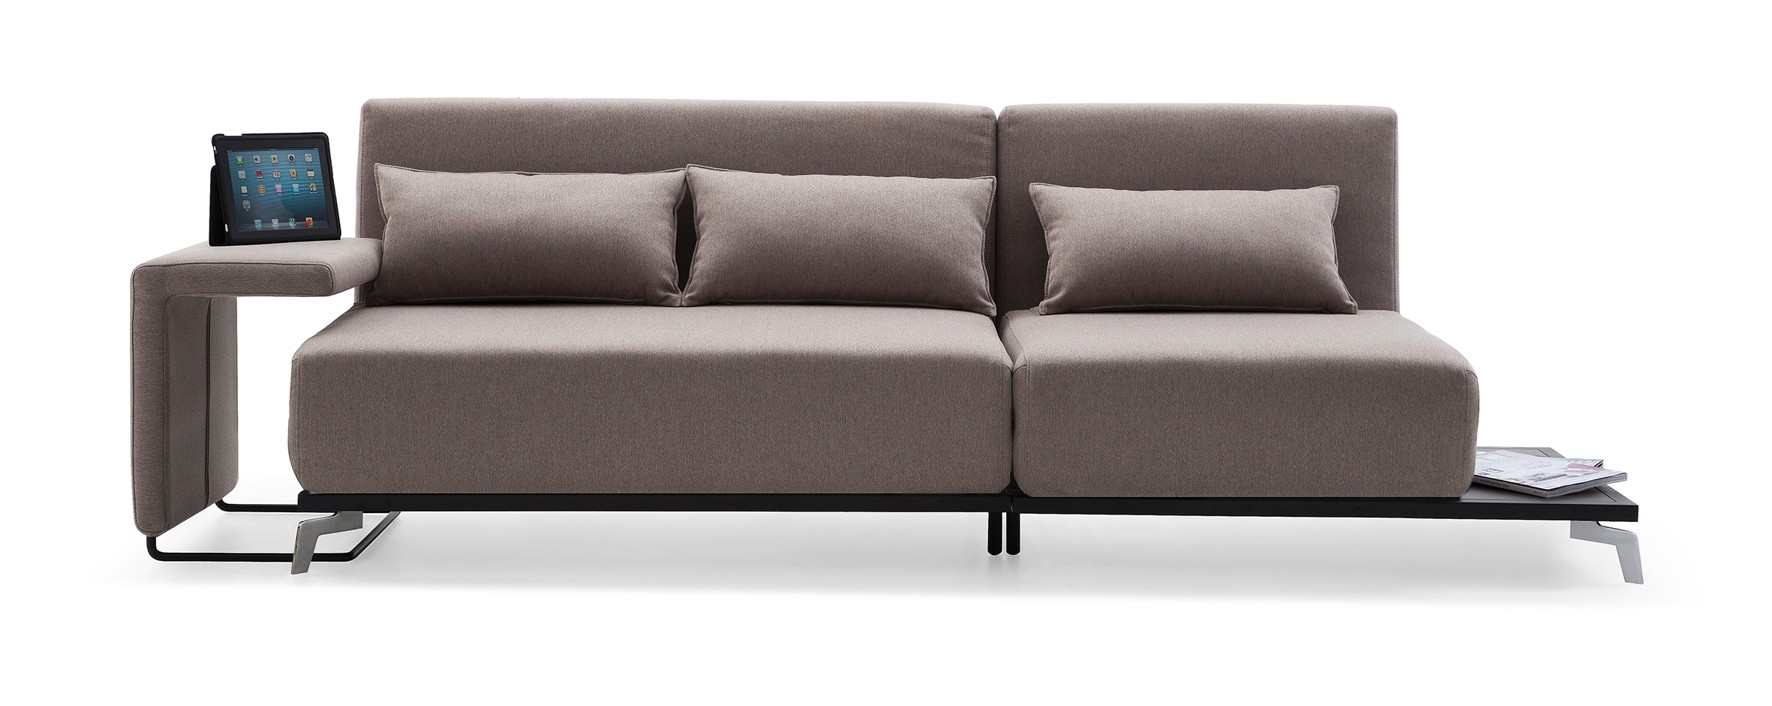 CADO Modern Furniture - JH033 Modern Sofa Bed